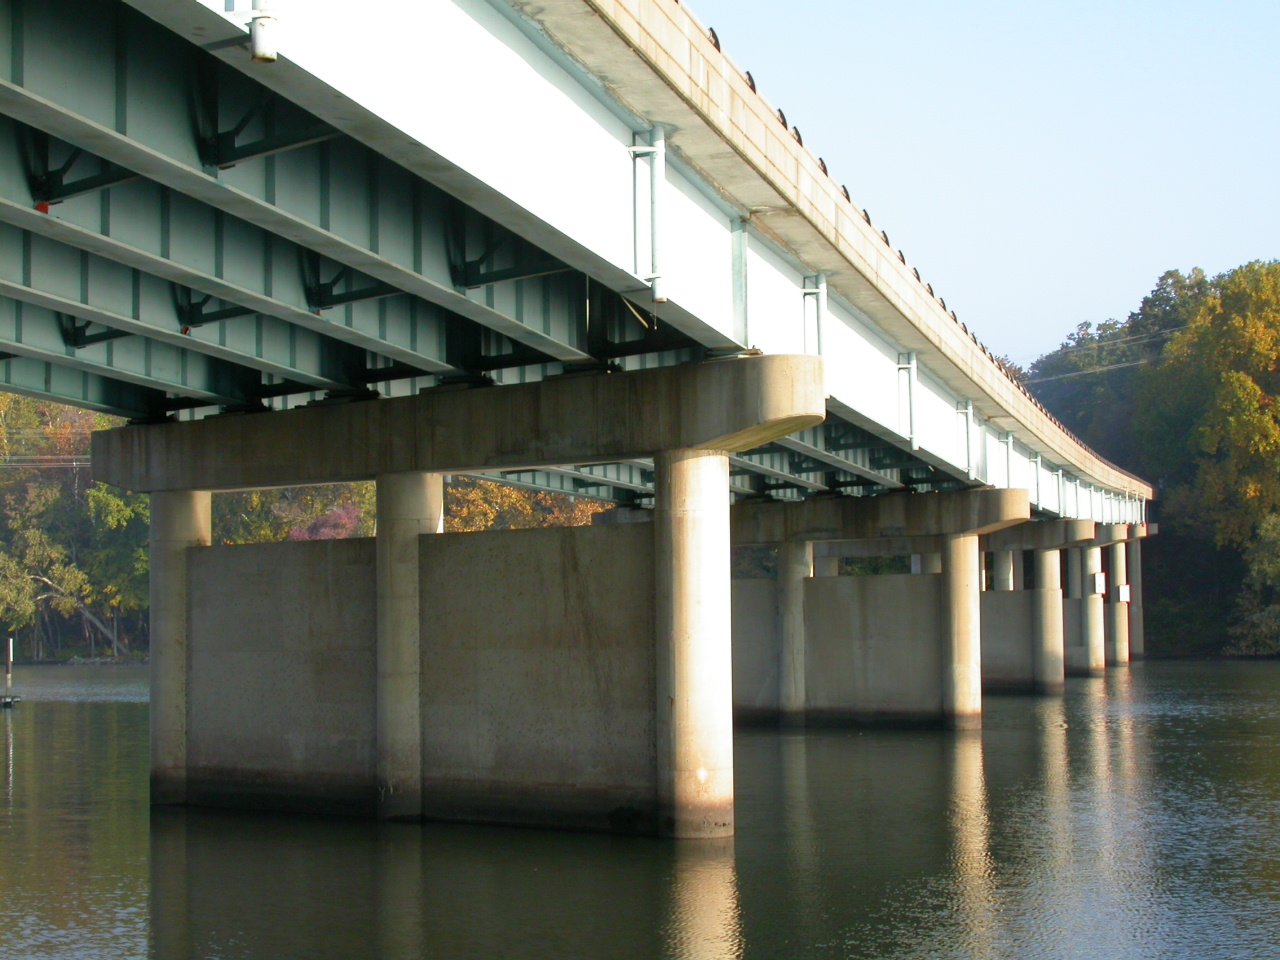 Bridge, Construction, Engineering, Traffic, Water, HQ Photo